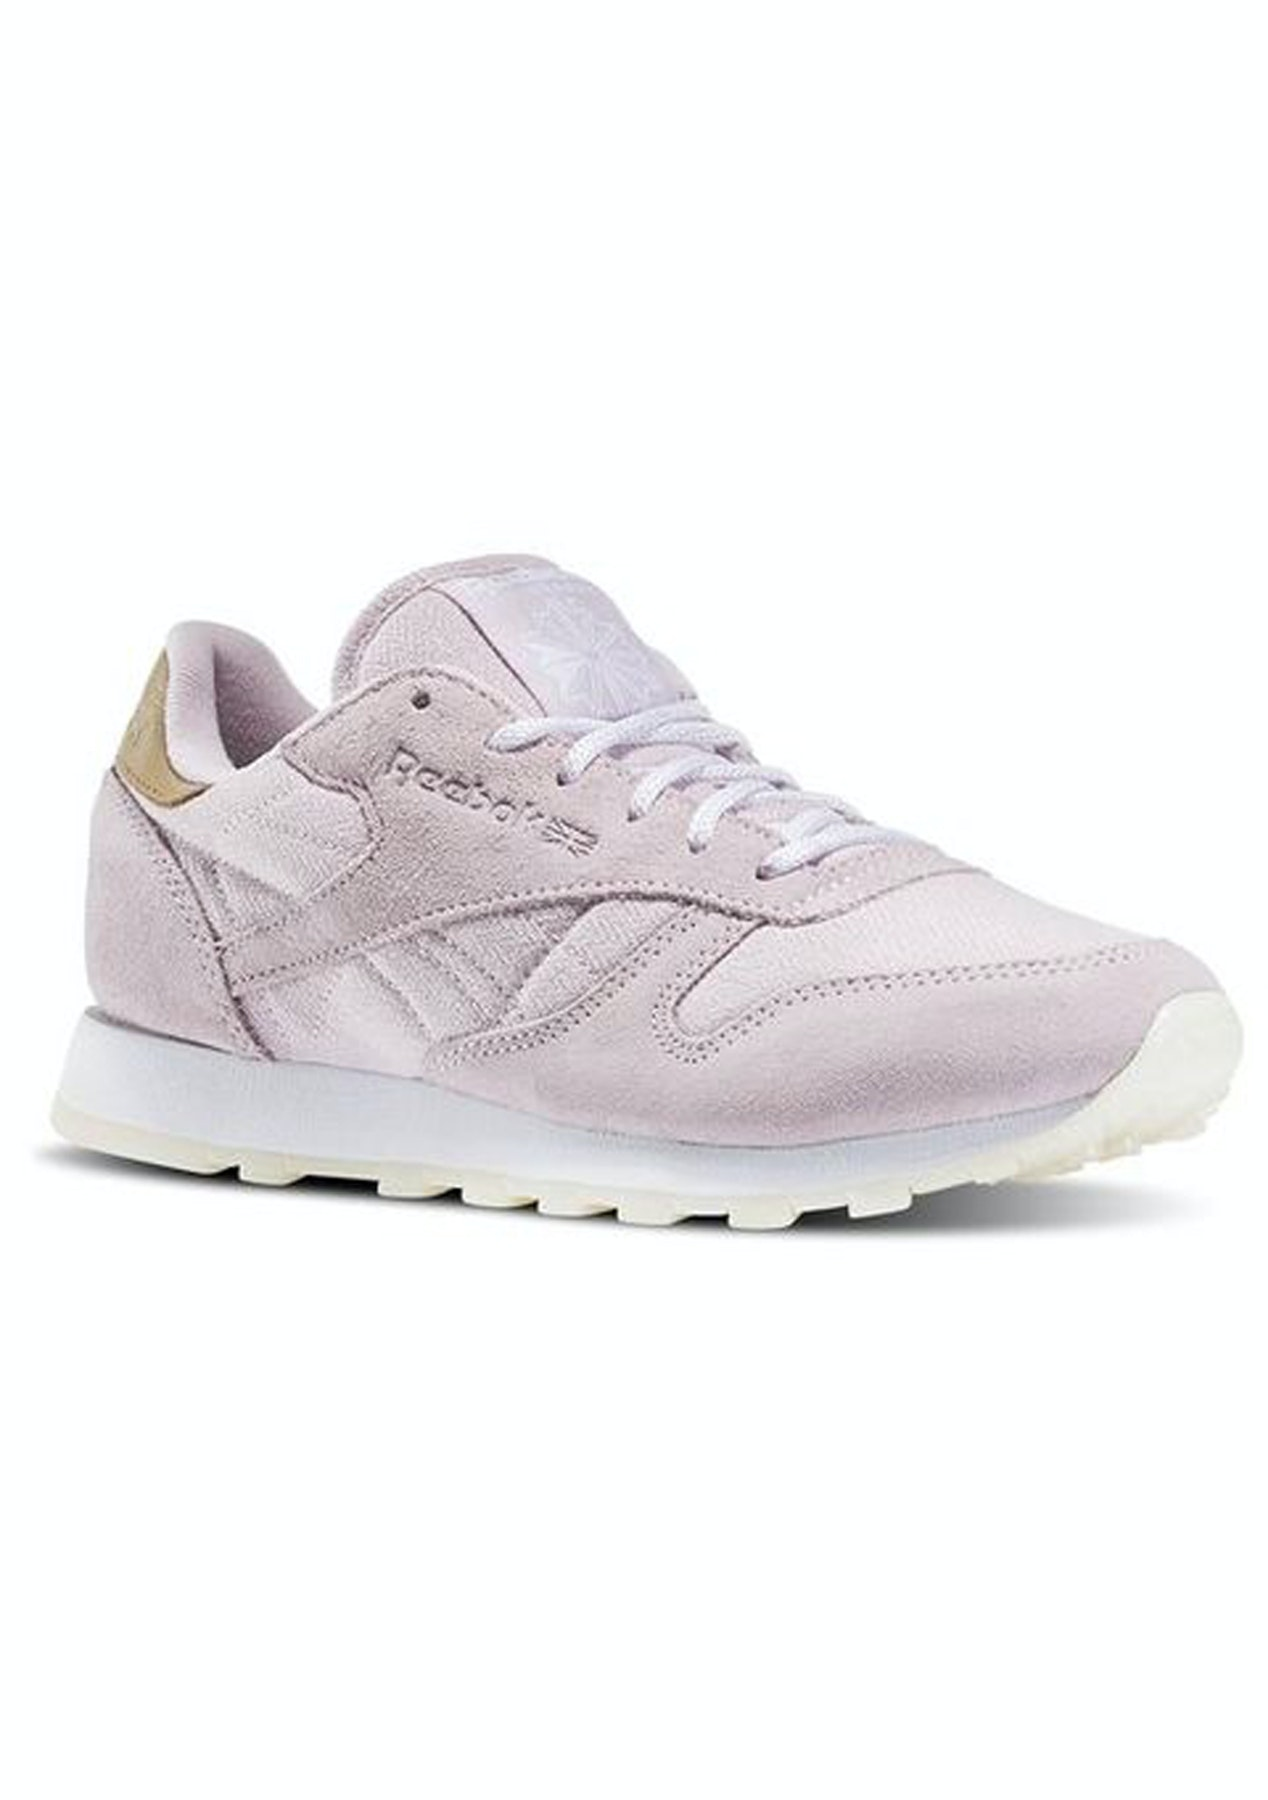 4031affc91013 Reebok Womens - Classic Leather Sea-Worn - Shell Purple   White - Final  Few  Shoes   Bags - Onceit